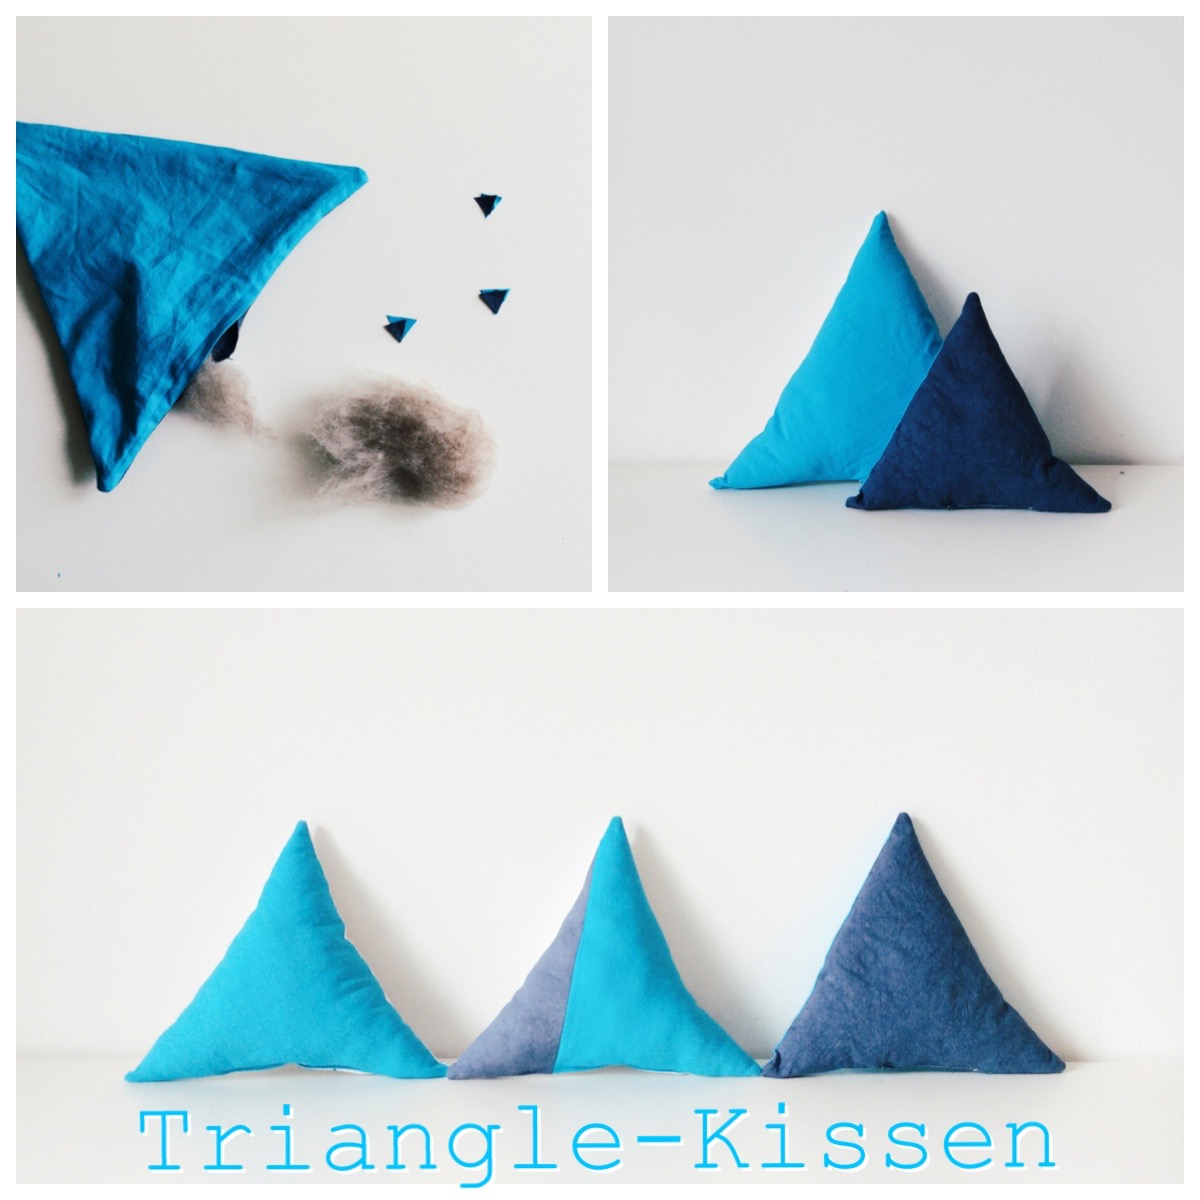 triangle cushion sewing tutorial, Triangelkissen